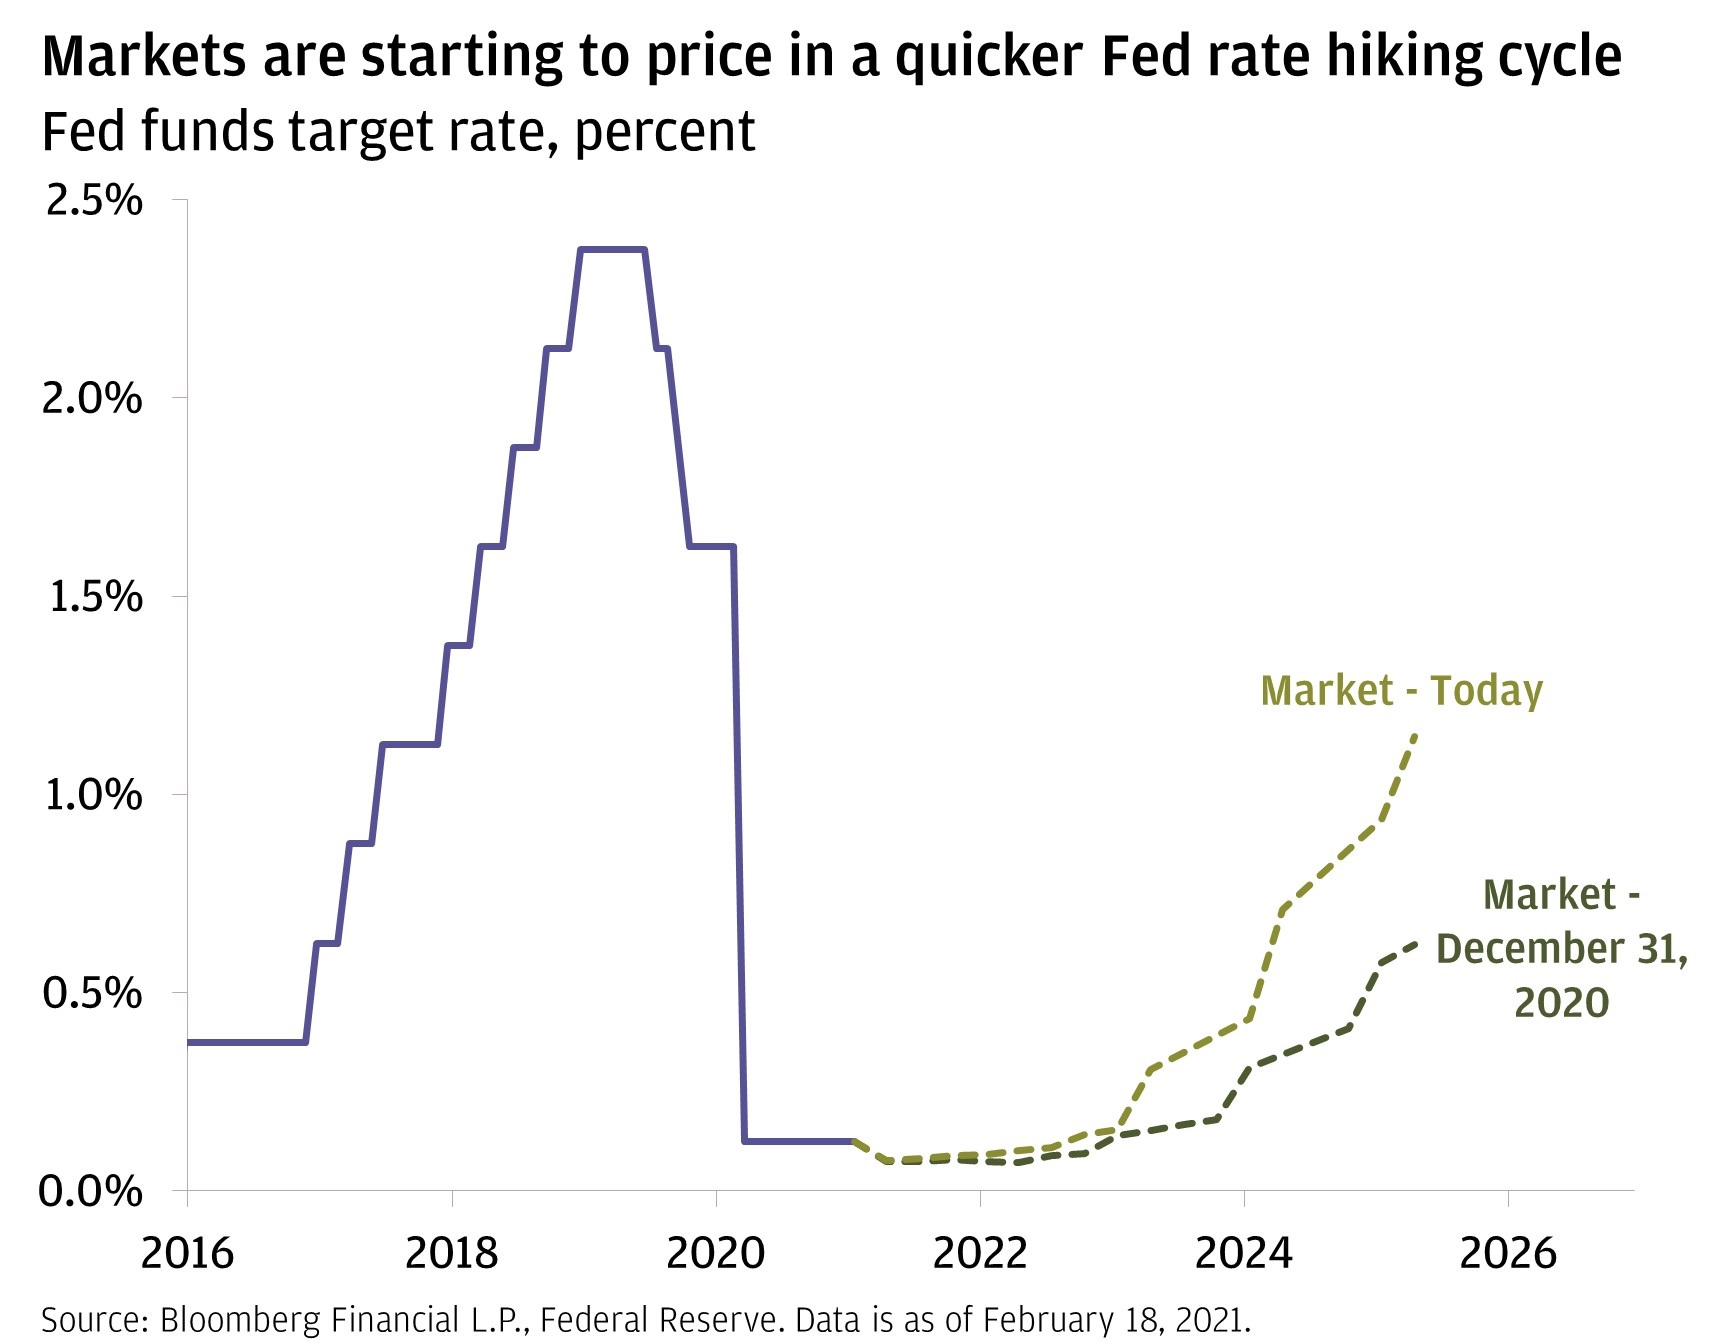 Chart 1: This chart shows the effective Federal Reserve's target policy rate from January 2016 to January 2021, as well as the market implied rate from January 2021 to April 2025 based on today's and December 2020's pricing.